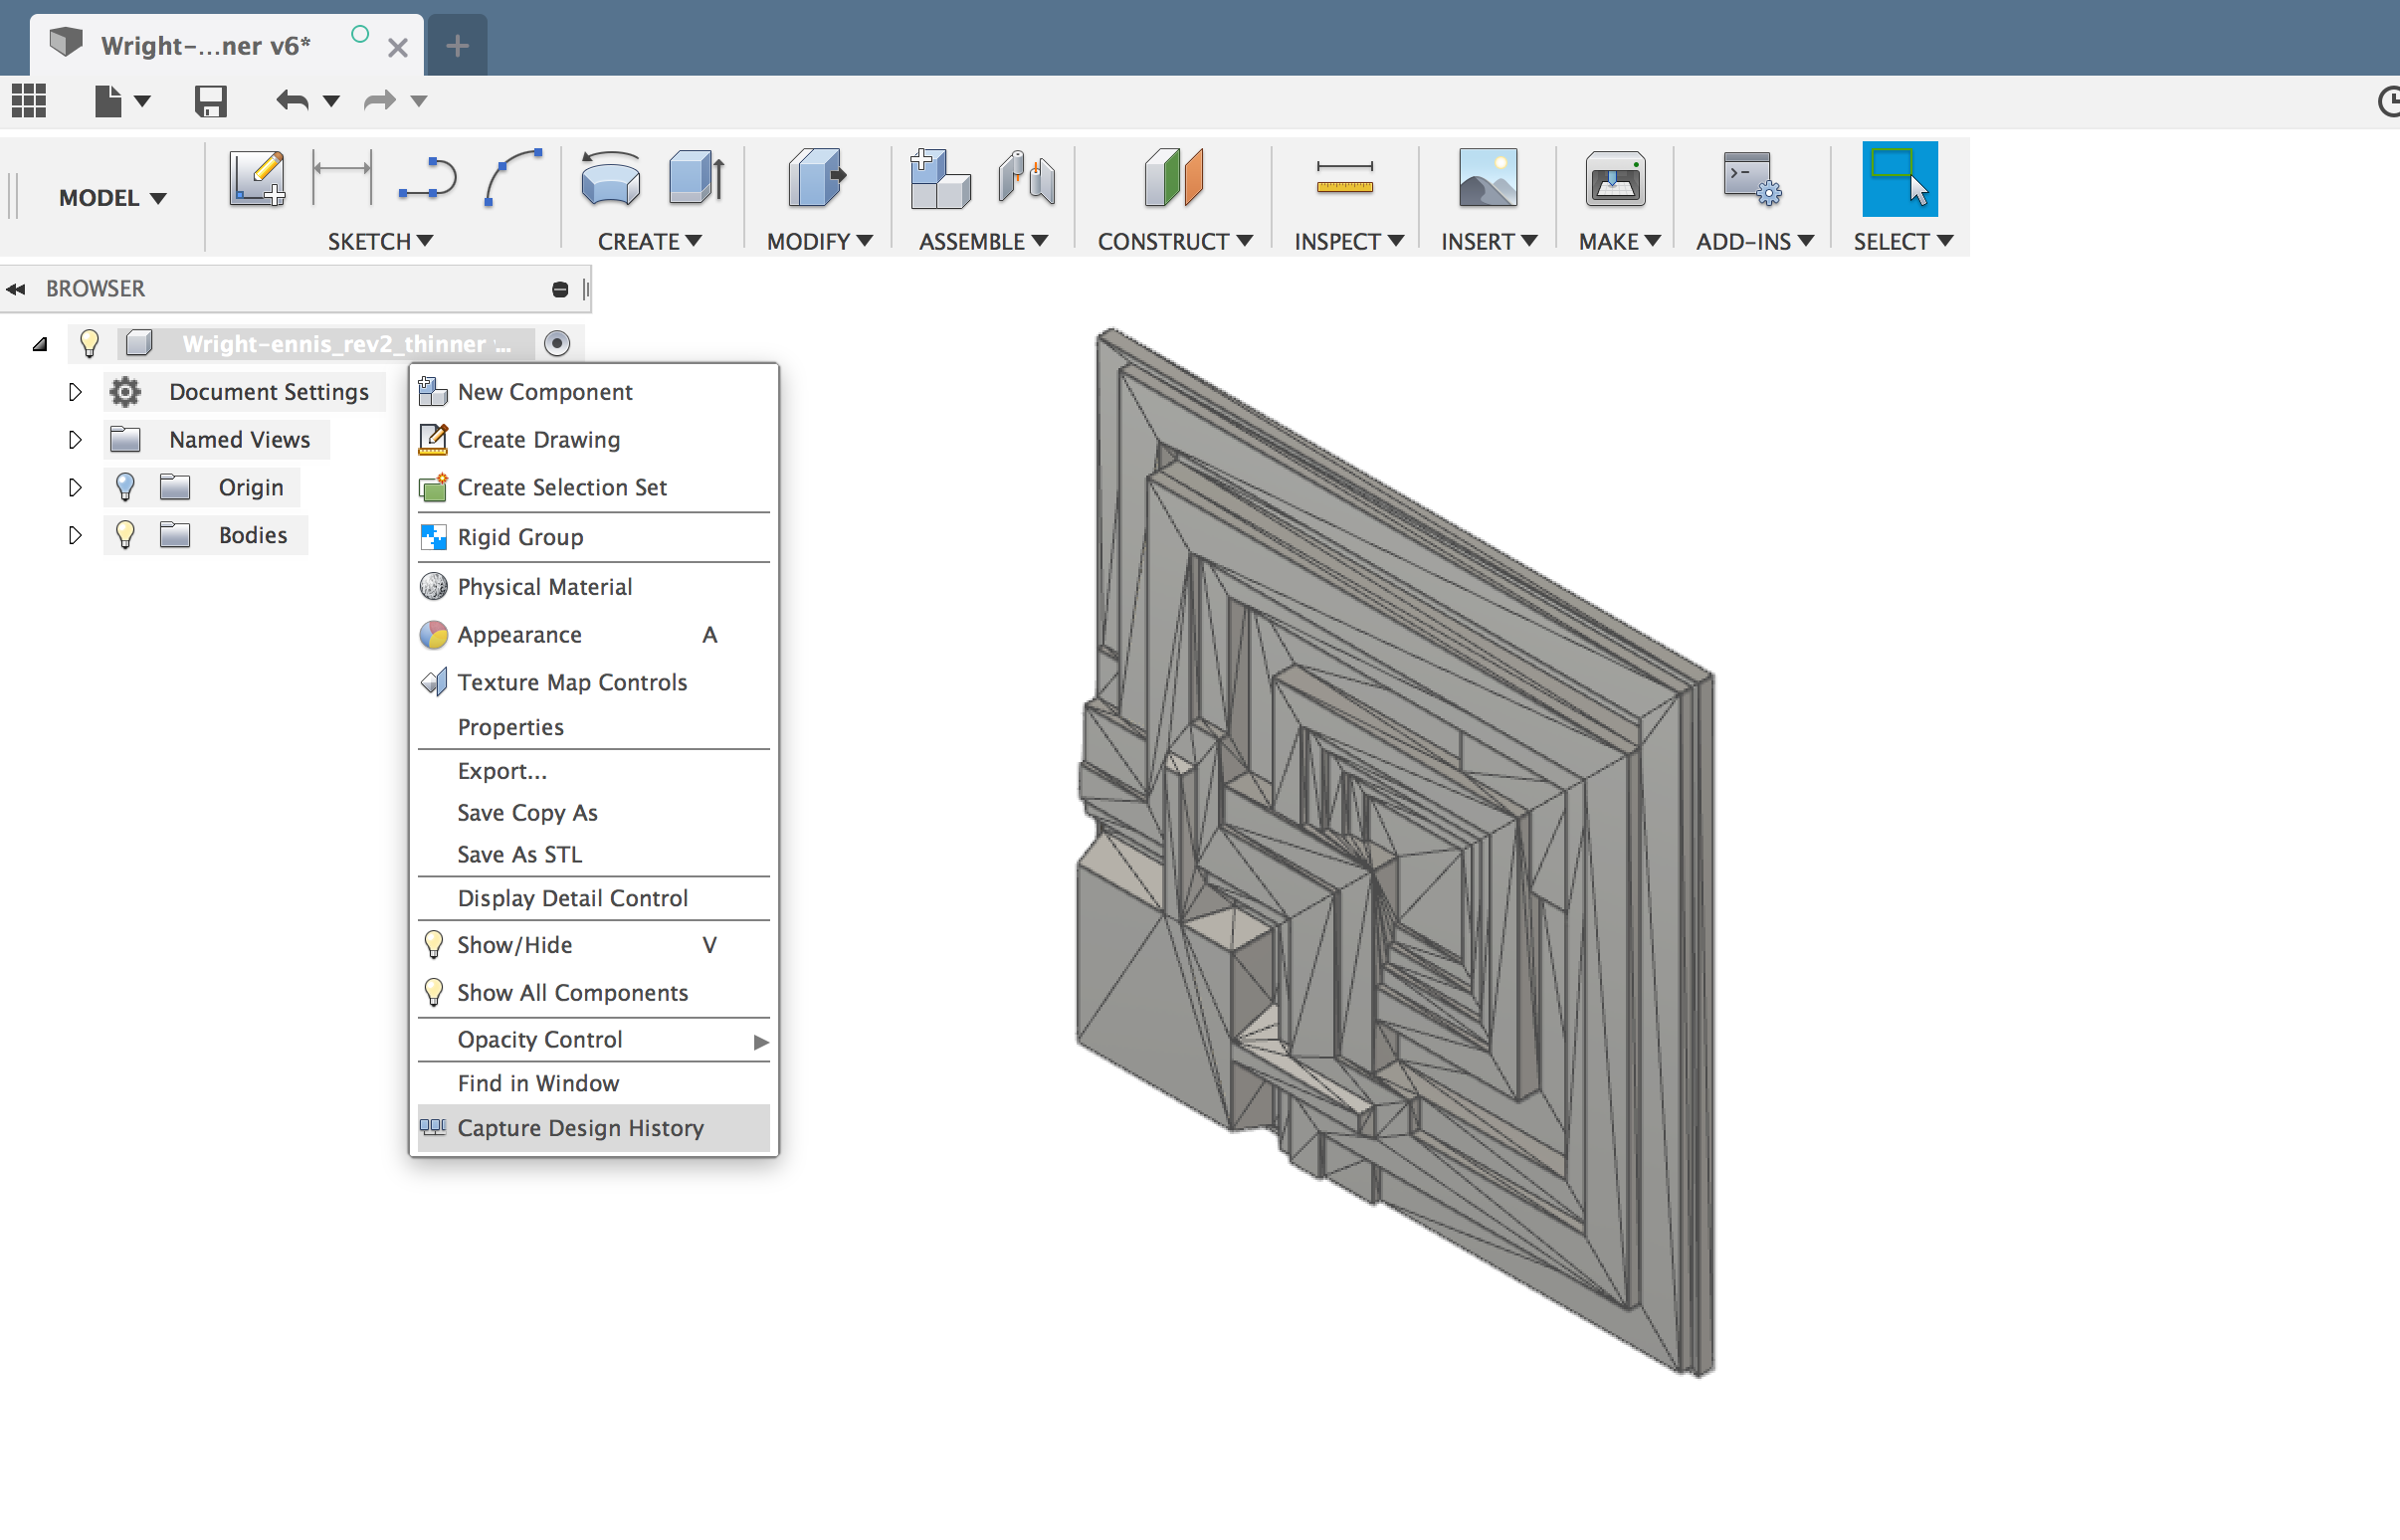 Turning on the 'Capture Design History' Feature in Fusion 360